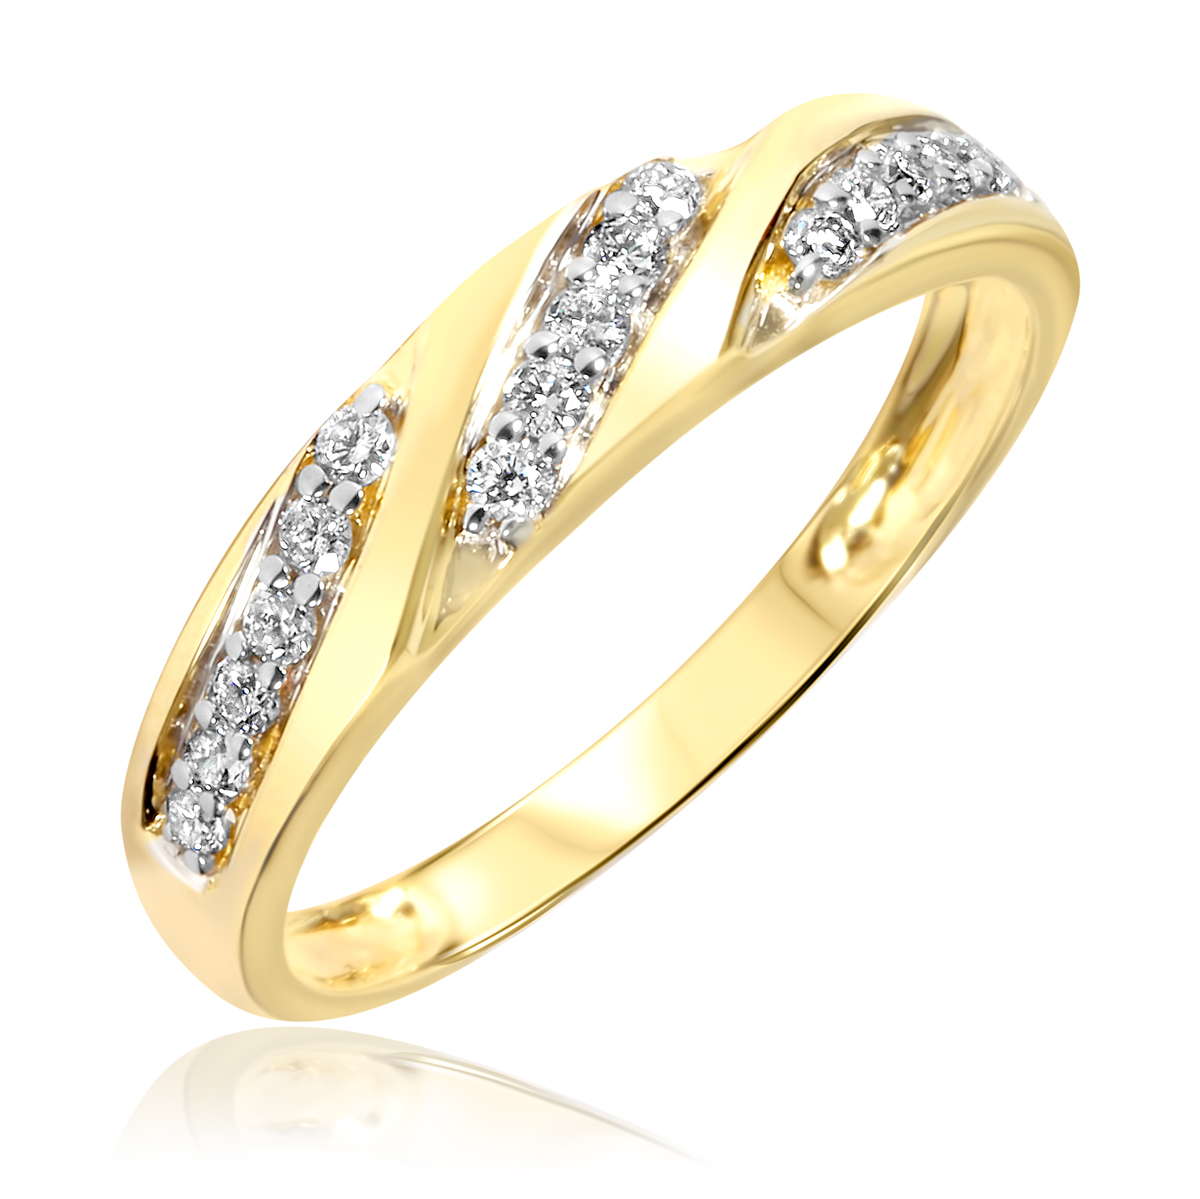 1 4 Carat TW Diamond Womens Wedding Ring 14K Yellow Gold